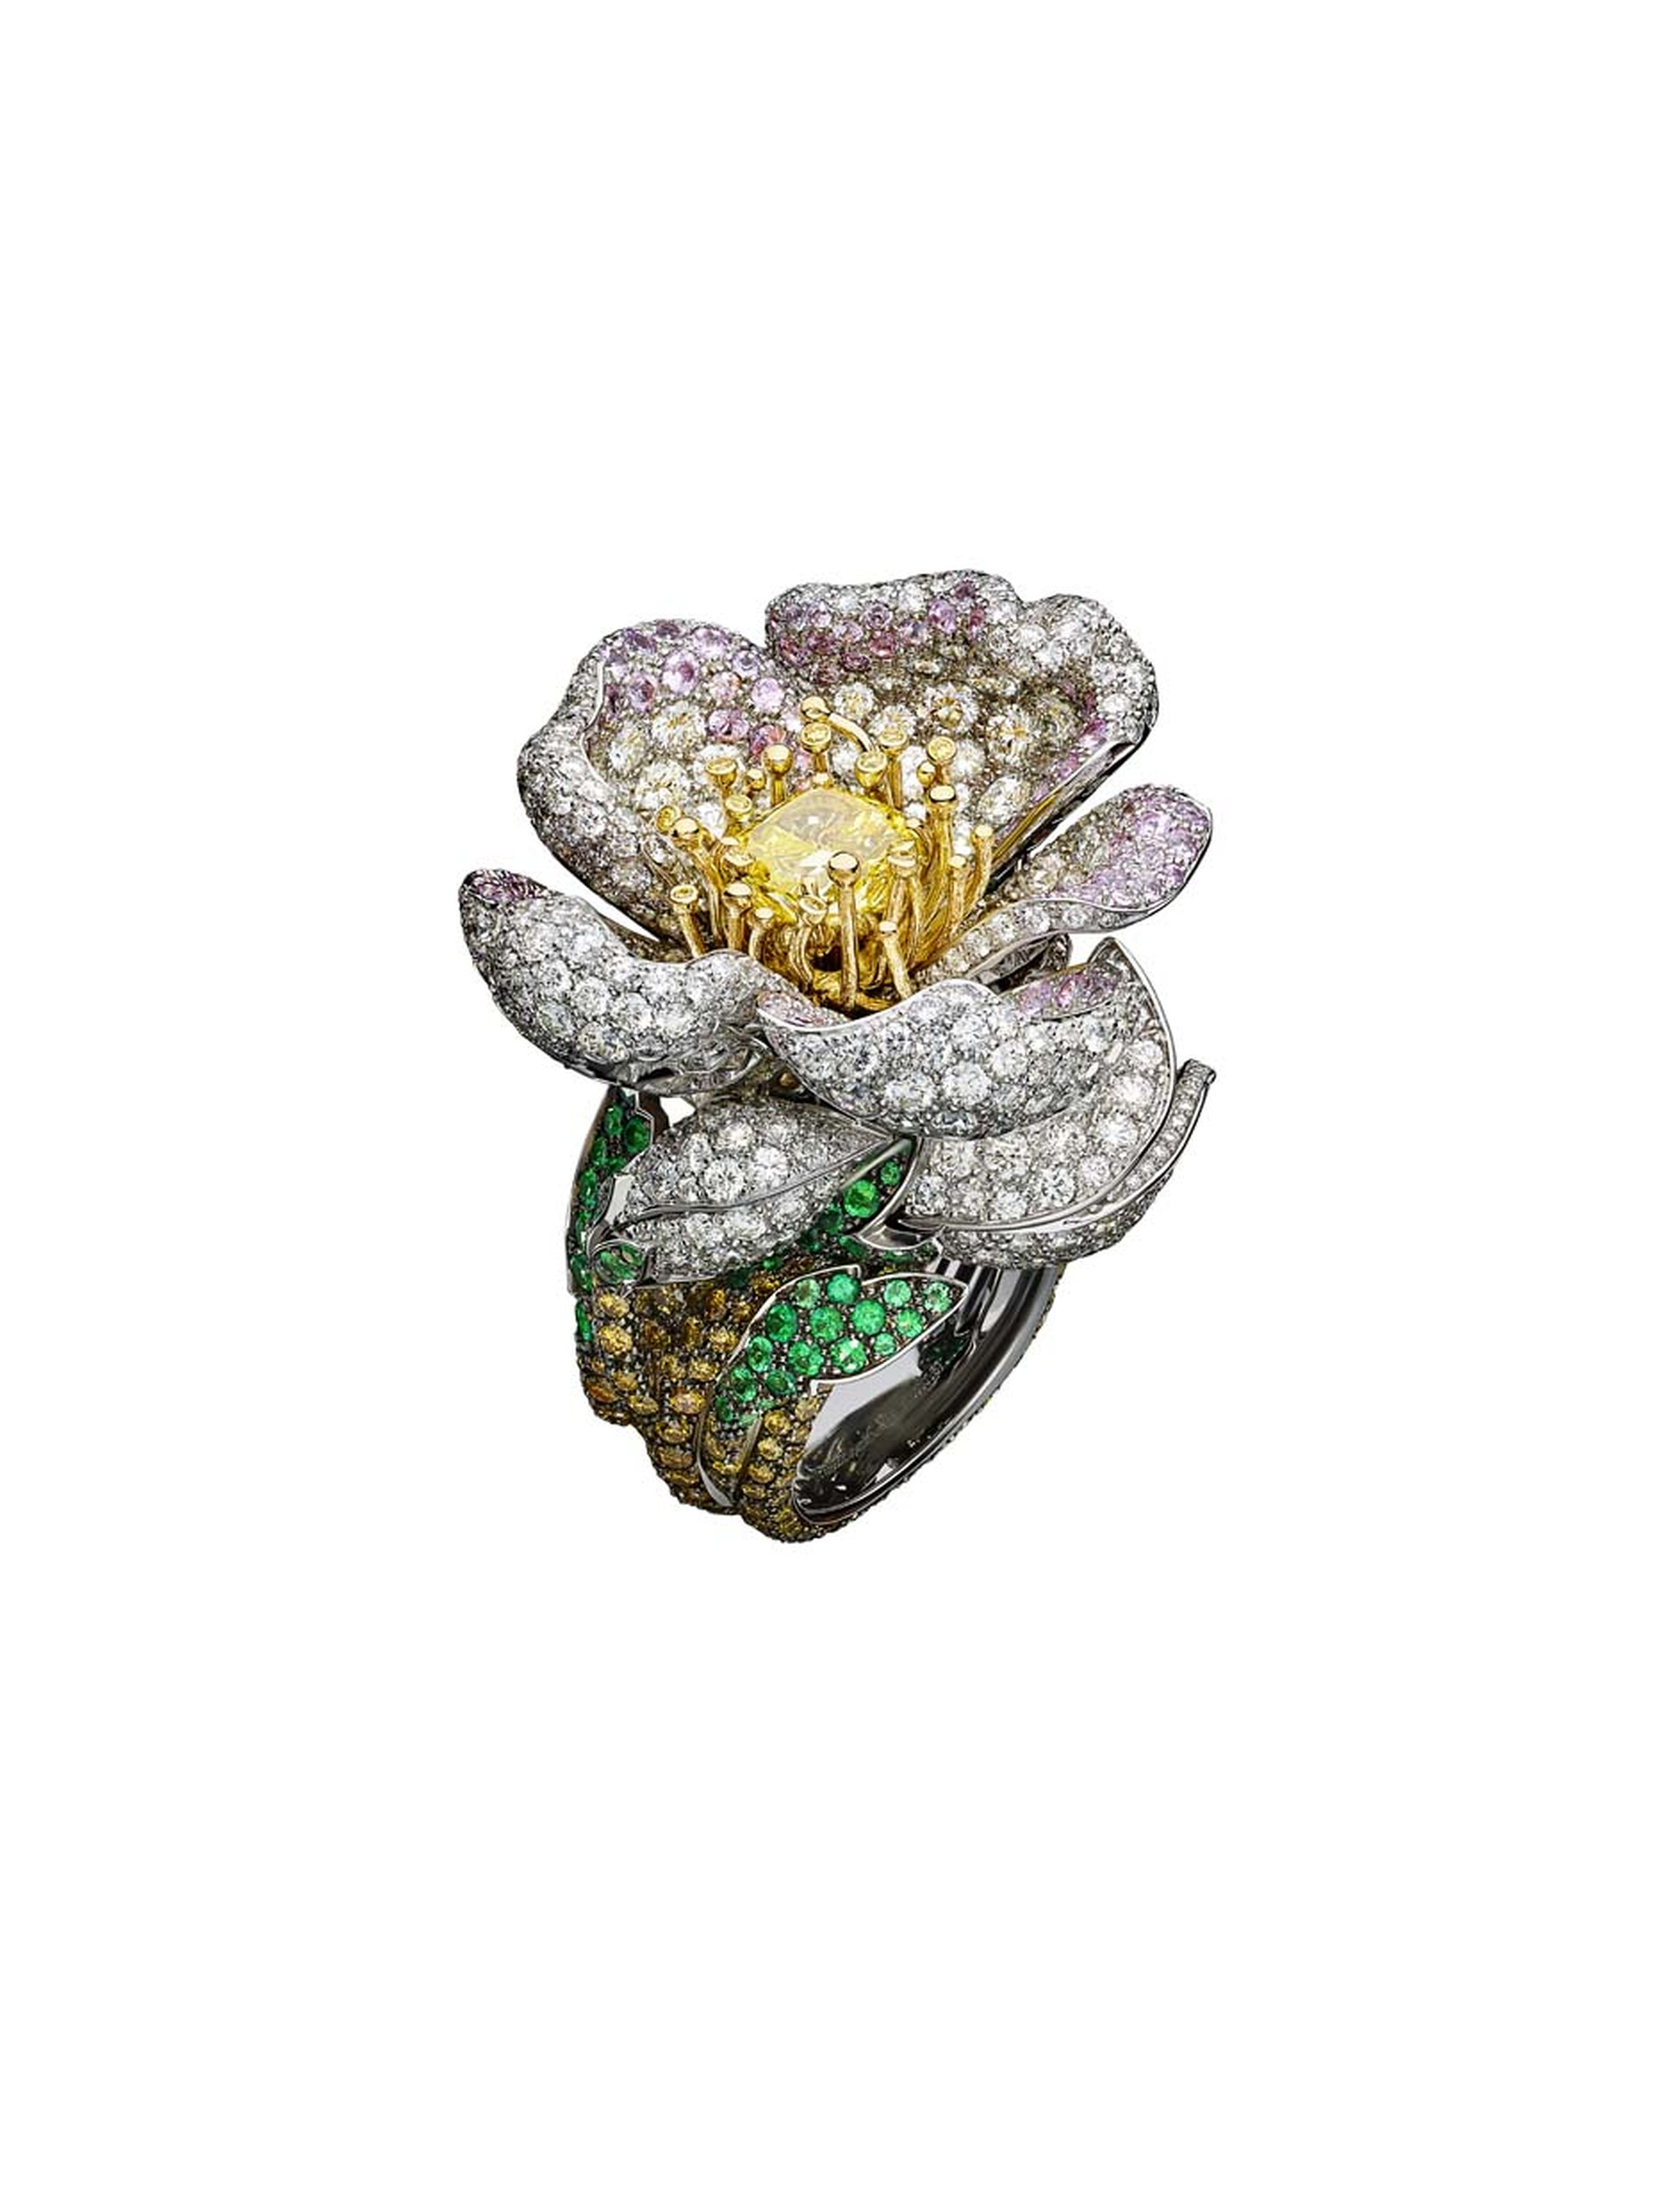 Giampiero Bodino Primavera white and yellow gold ring featuring an emerald paved shank leading to pink sapphires as well as white, grey, yellow and cognac diamonds underneath a budding yellow diamond. Image by: Laziz Hamani